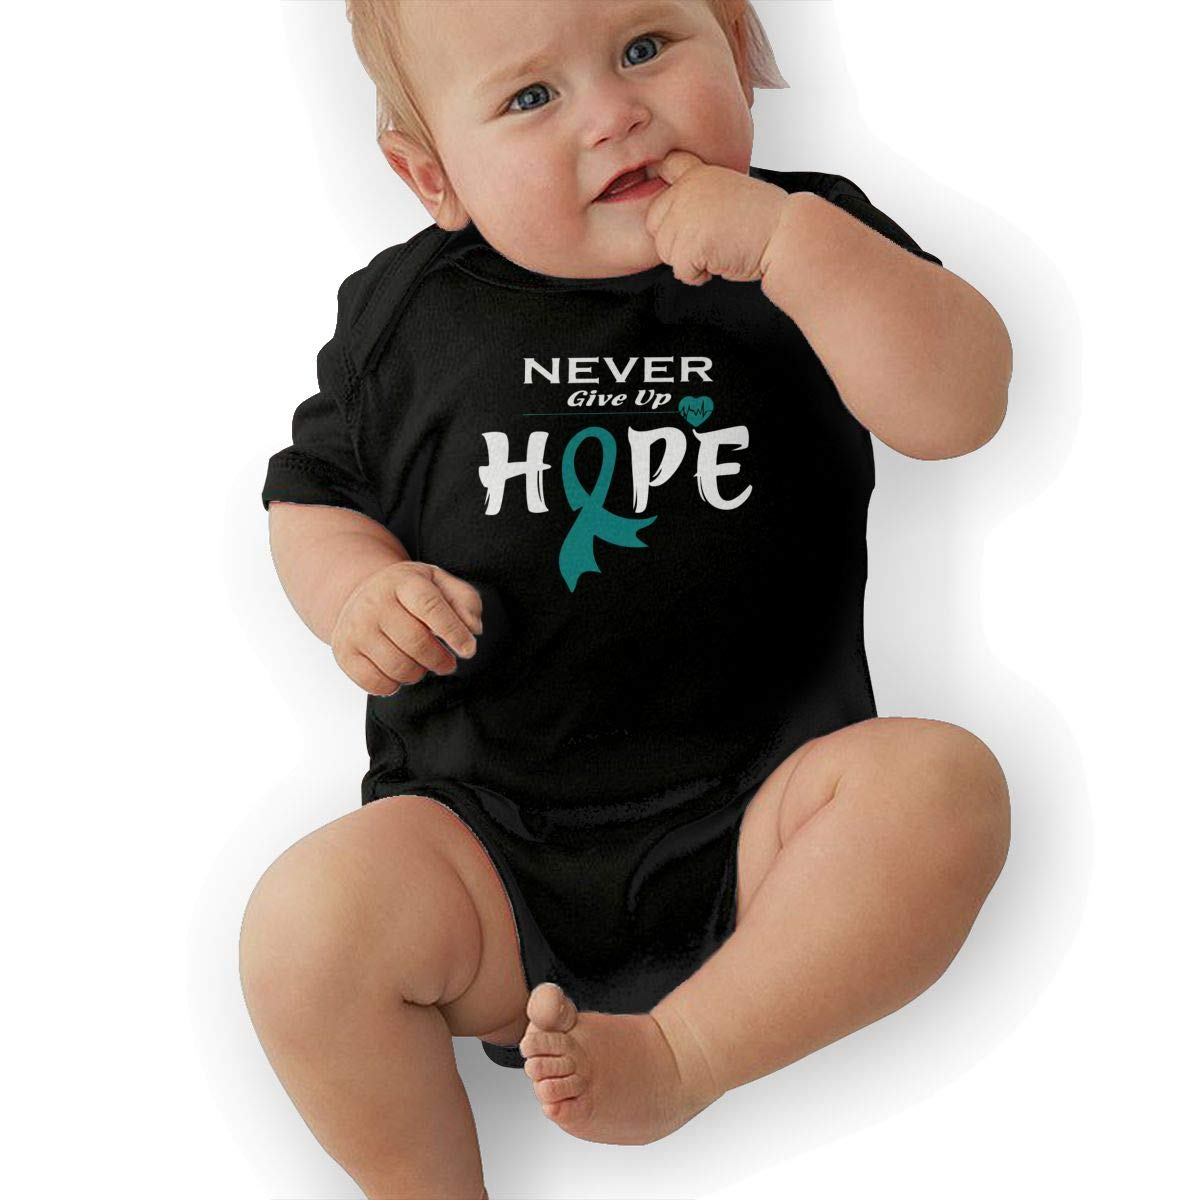 Soft Ovarian Cancer Awareness Jumpsuit U88oi-8 Short Sleeve Cotton Rompers for Baby Girls Boys